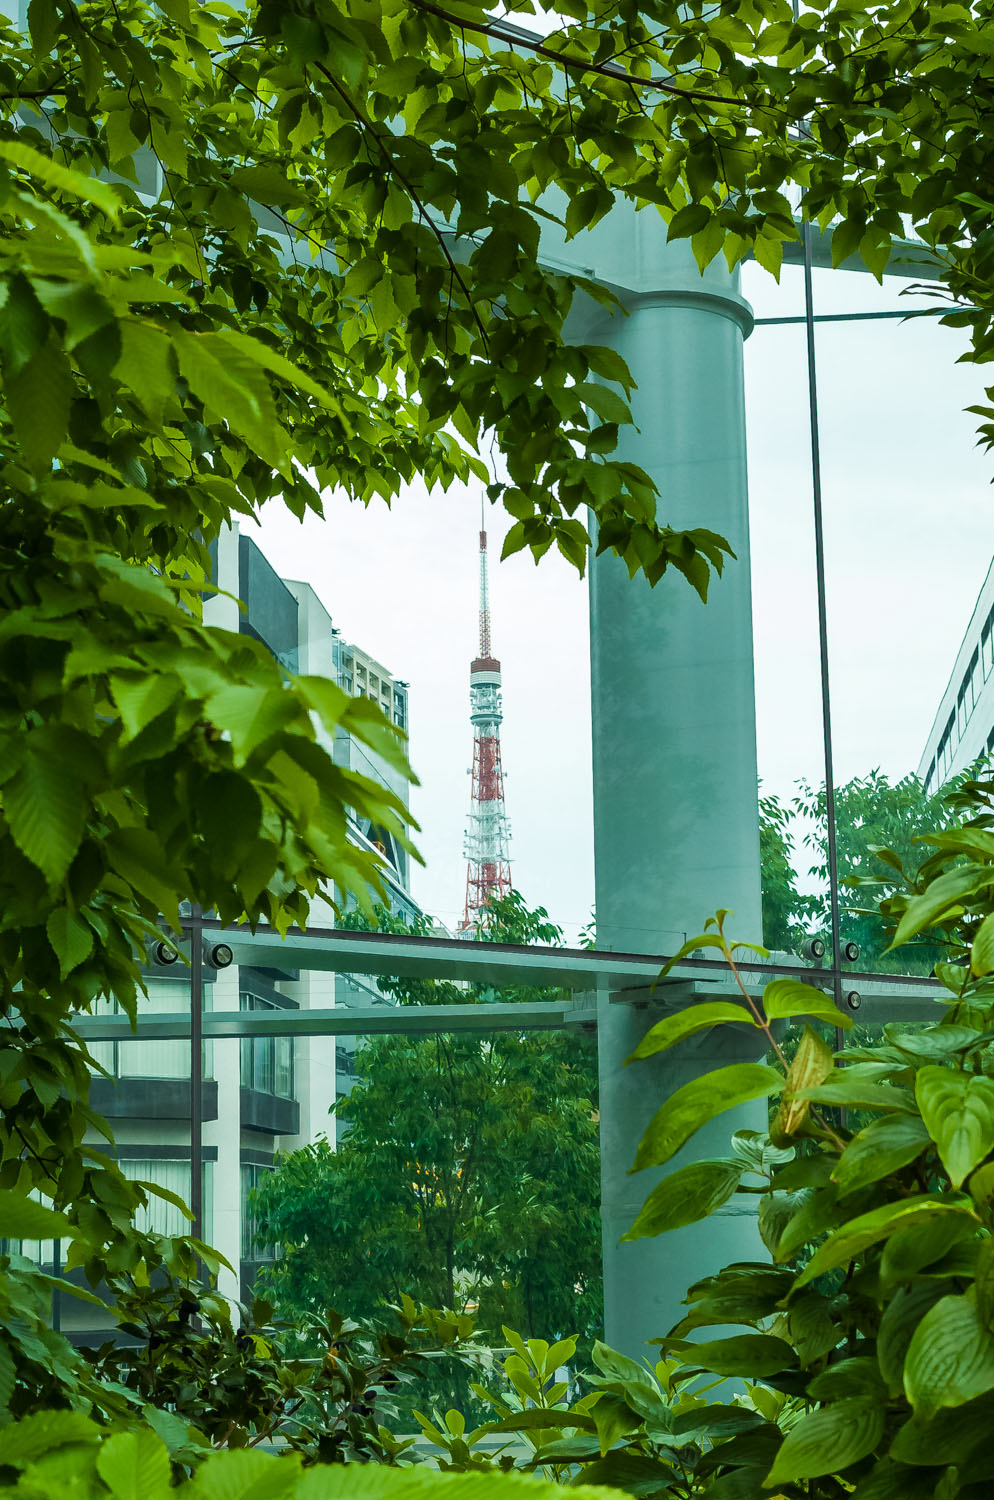 Tokyo Tower surrounded by green